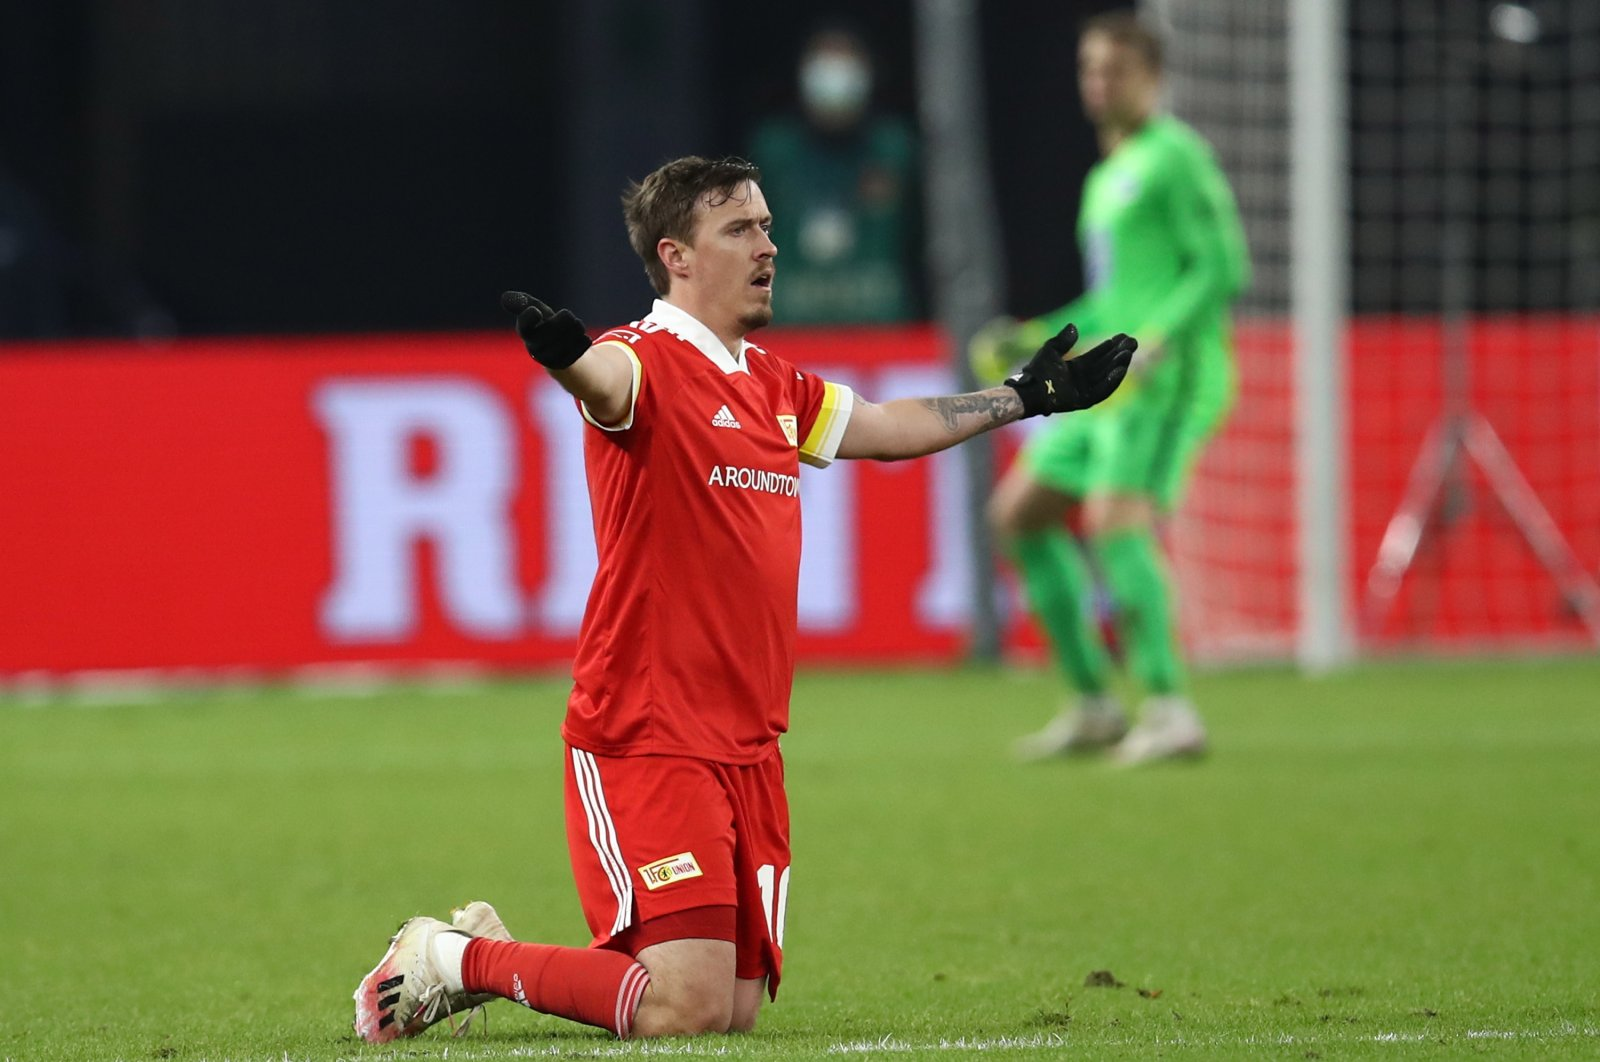 Max Kruse of Union Berlin reacts during the German Bundesliga football match between Hertha BSC and Union Berlin at Olympiastadion in Berlin, Germany, Dec. 4, 2020. (EPA Photo)